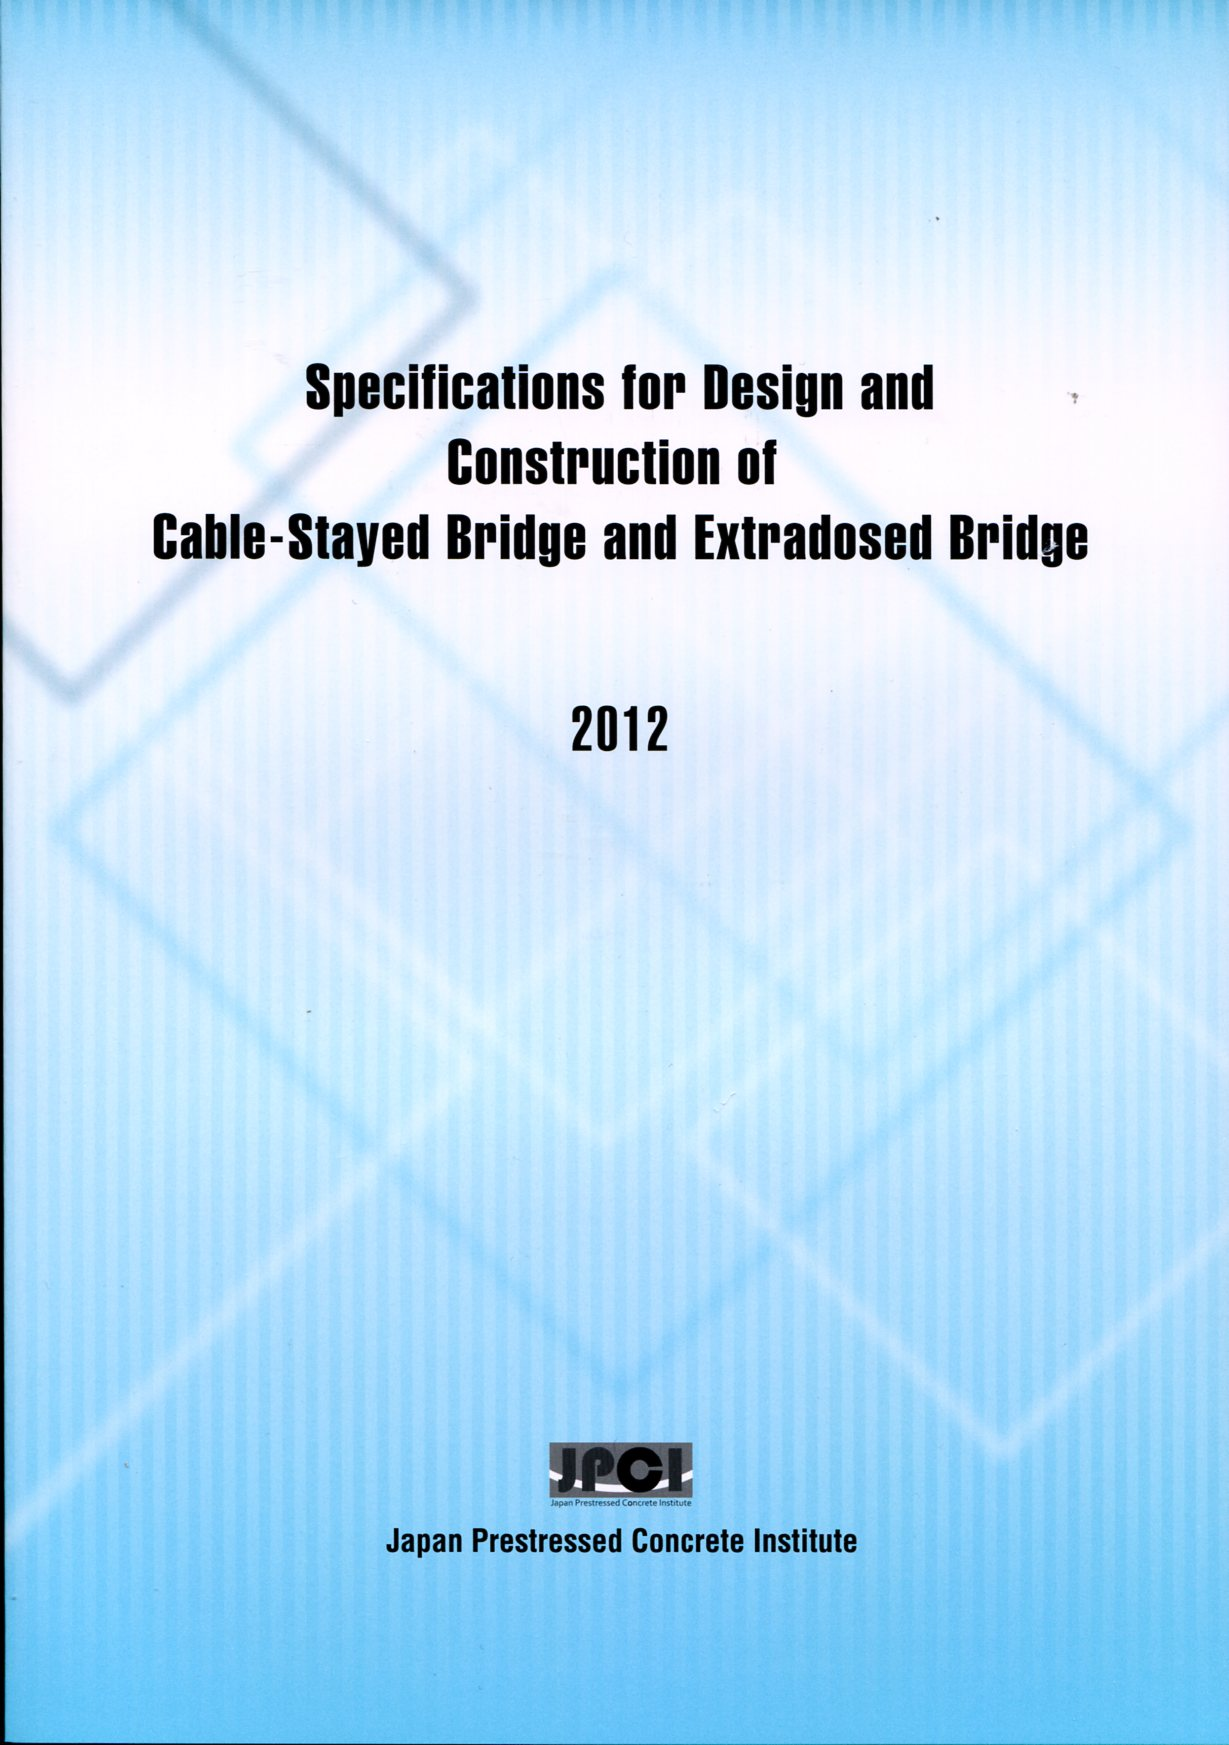 2012 Specifications for Design and Construction of Cable-Stayed Bride and Extradosed Bridge